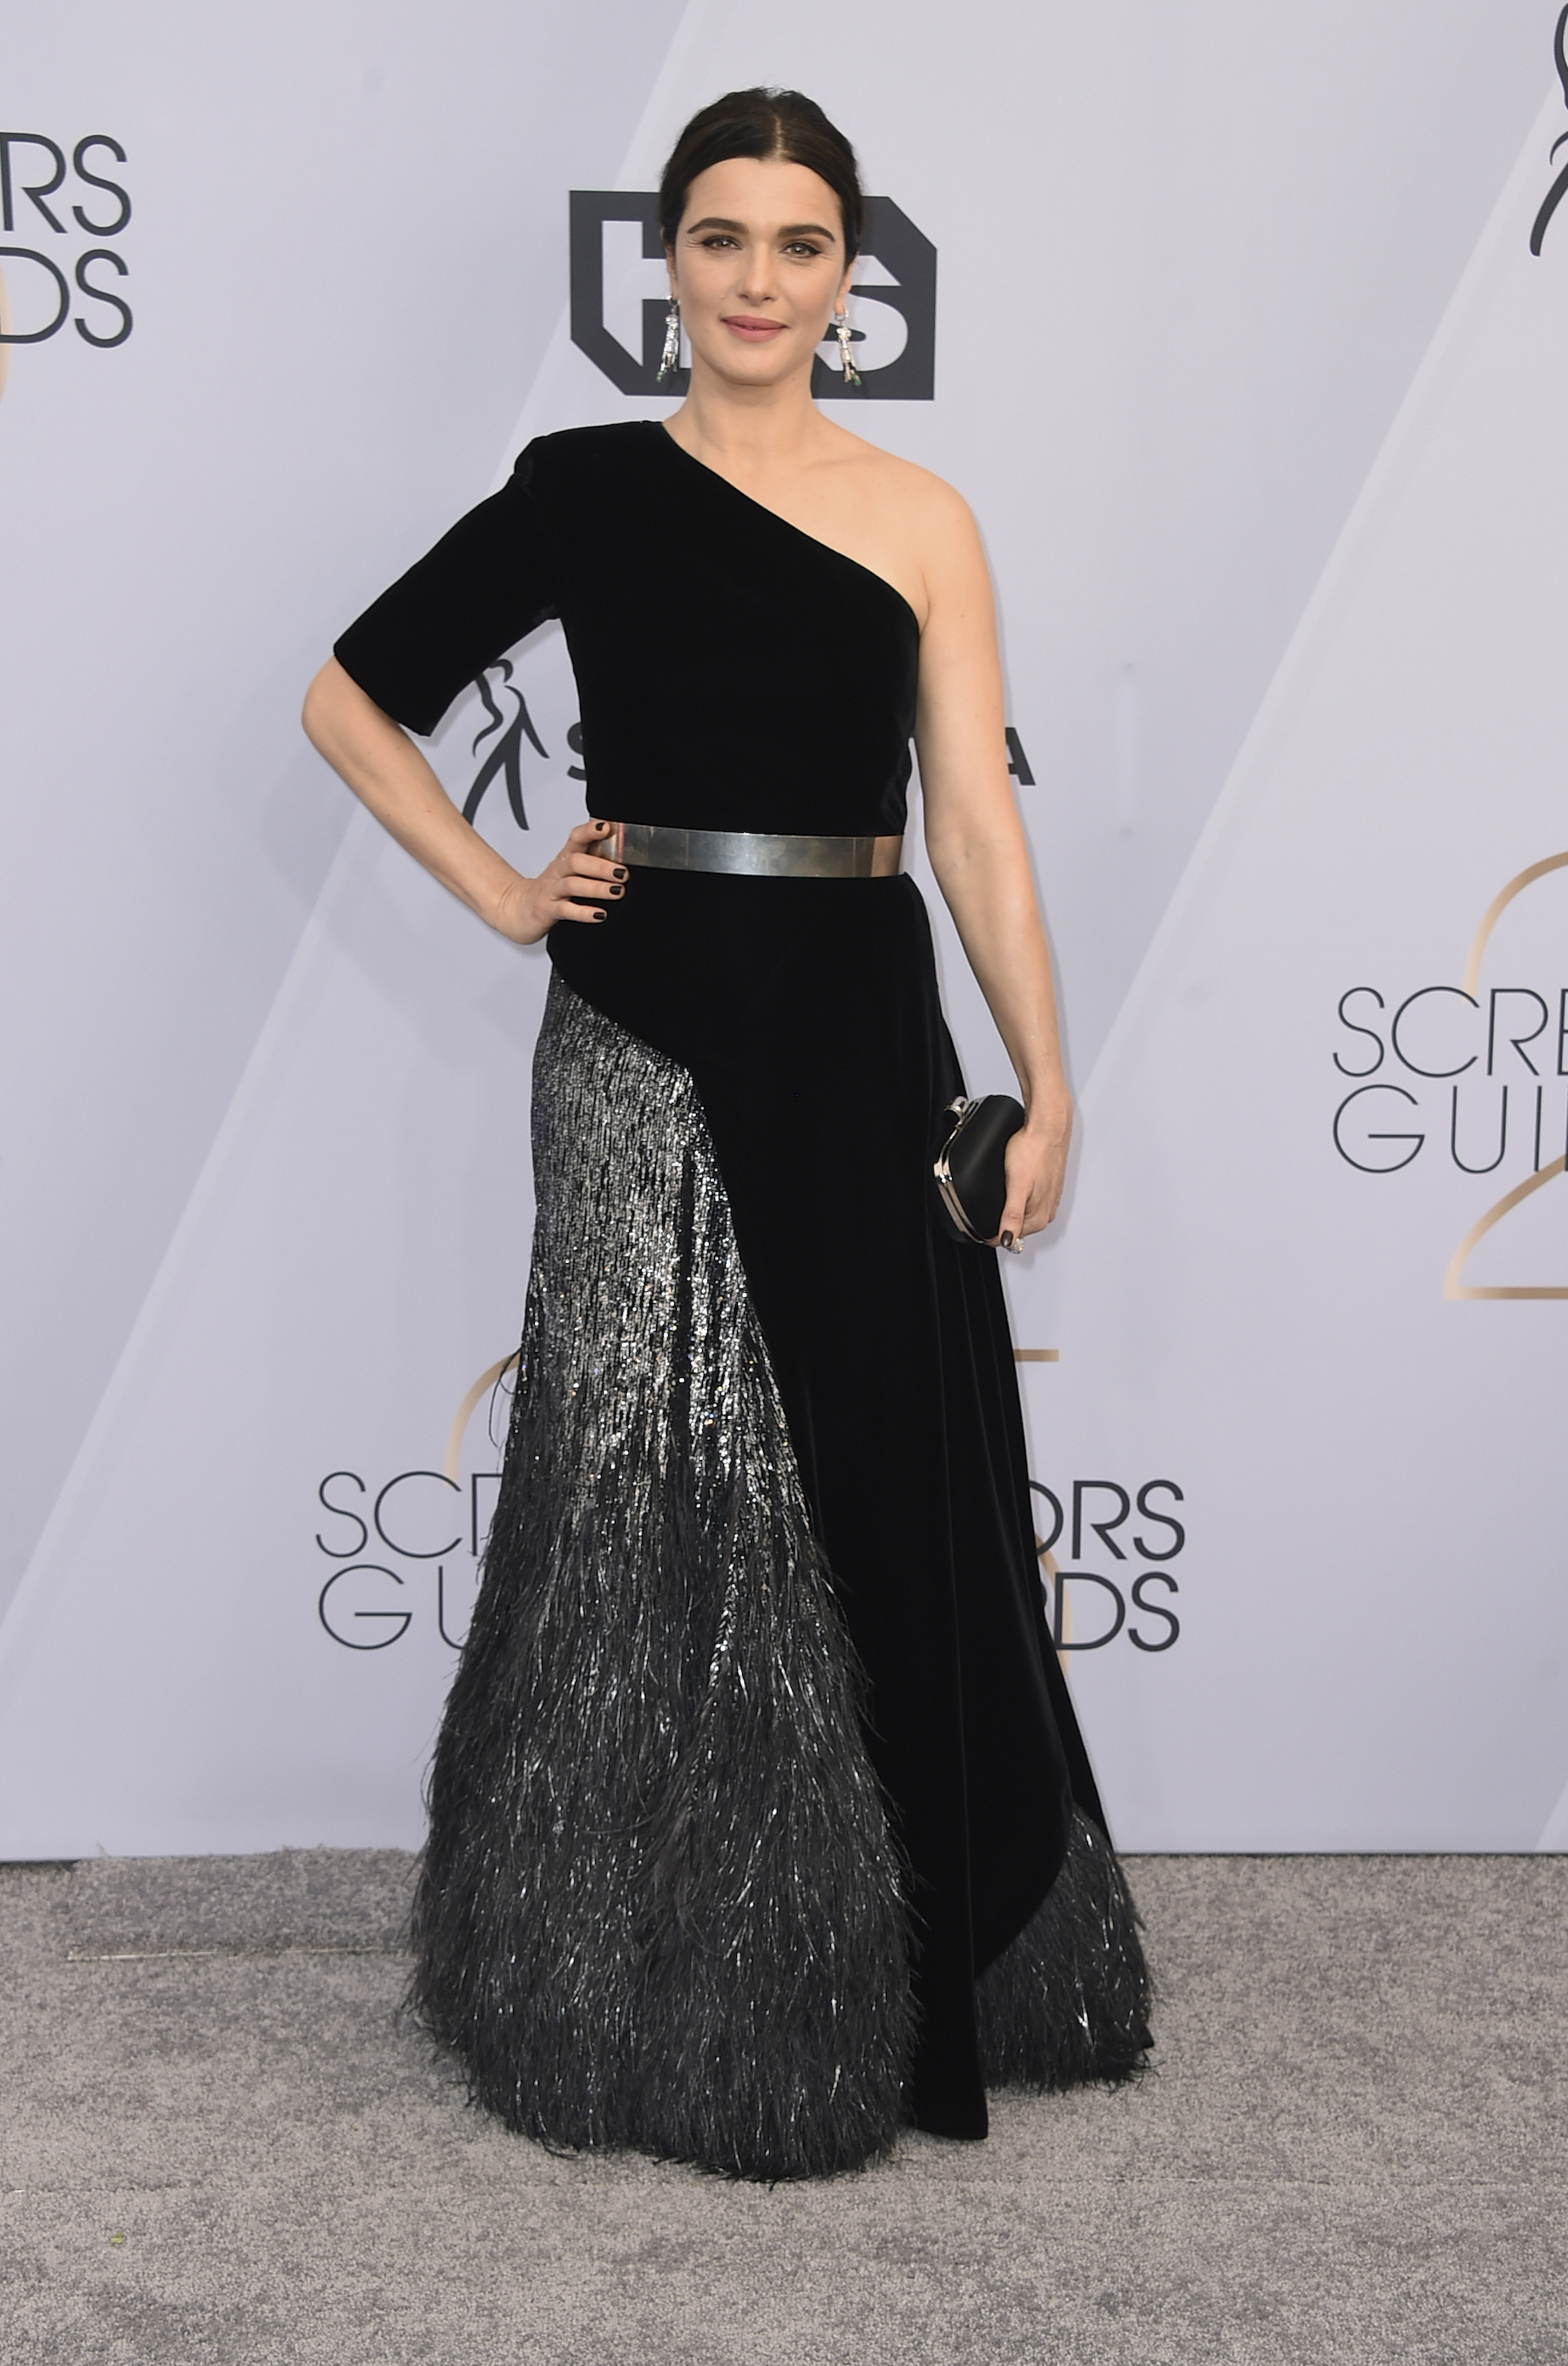 <div class='meta'><div class='origin-logo' data-origin='AP'></div><span class='caption-text' data-credit='Jordan Strauss/Invision/AP'>Rachel Weisz arrives at the 25th annual Screen Actors Guild Awards at the Shrine Auditorium & Expo Hall on Sunday, Jan. 27, 2019, in Los Angeles.</span></div>